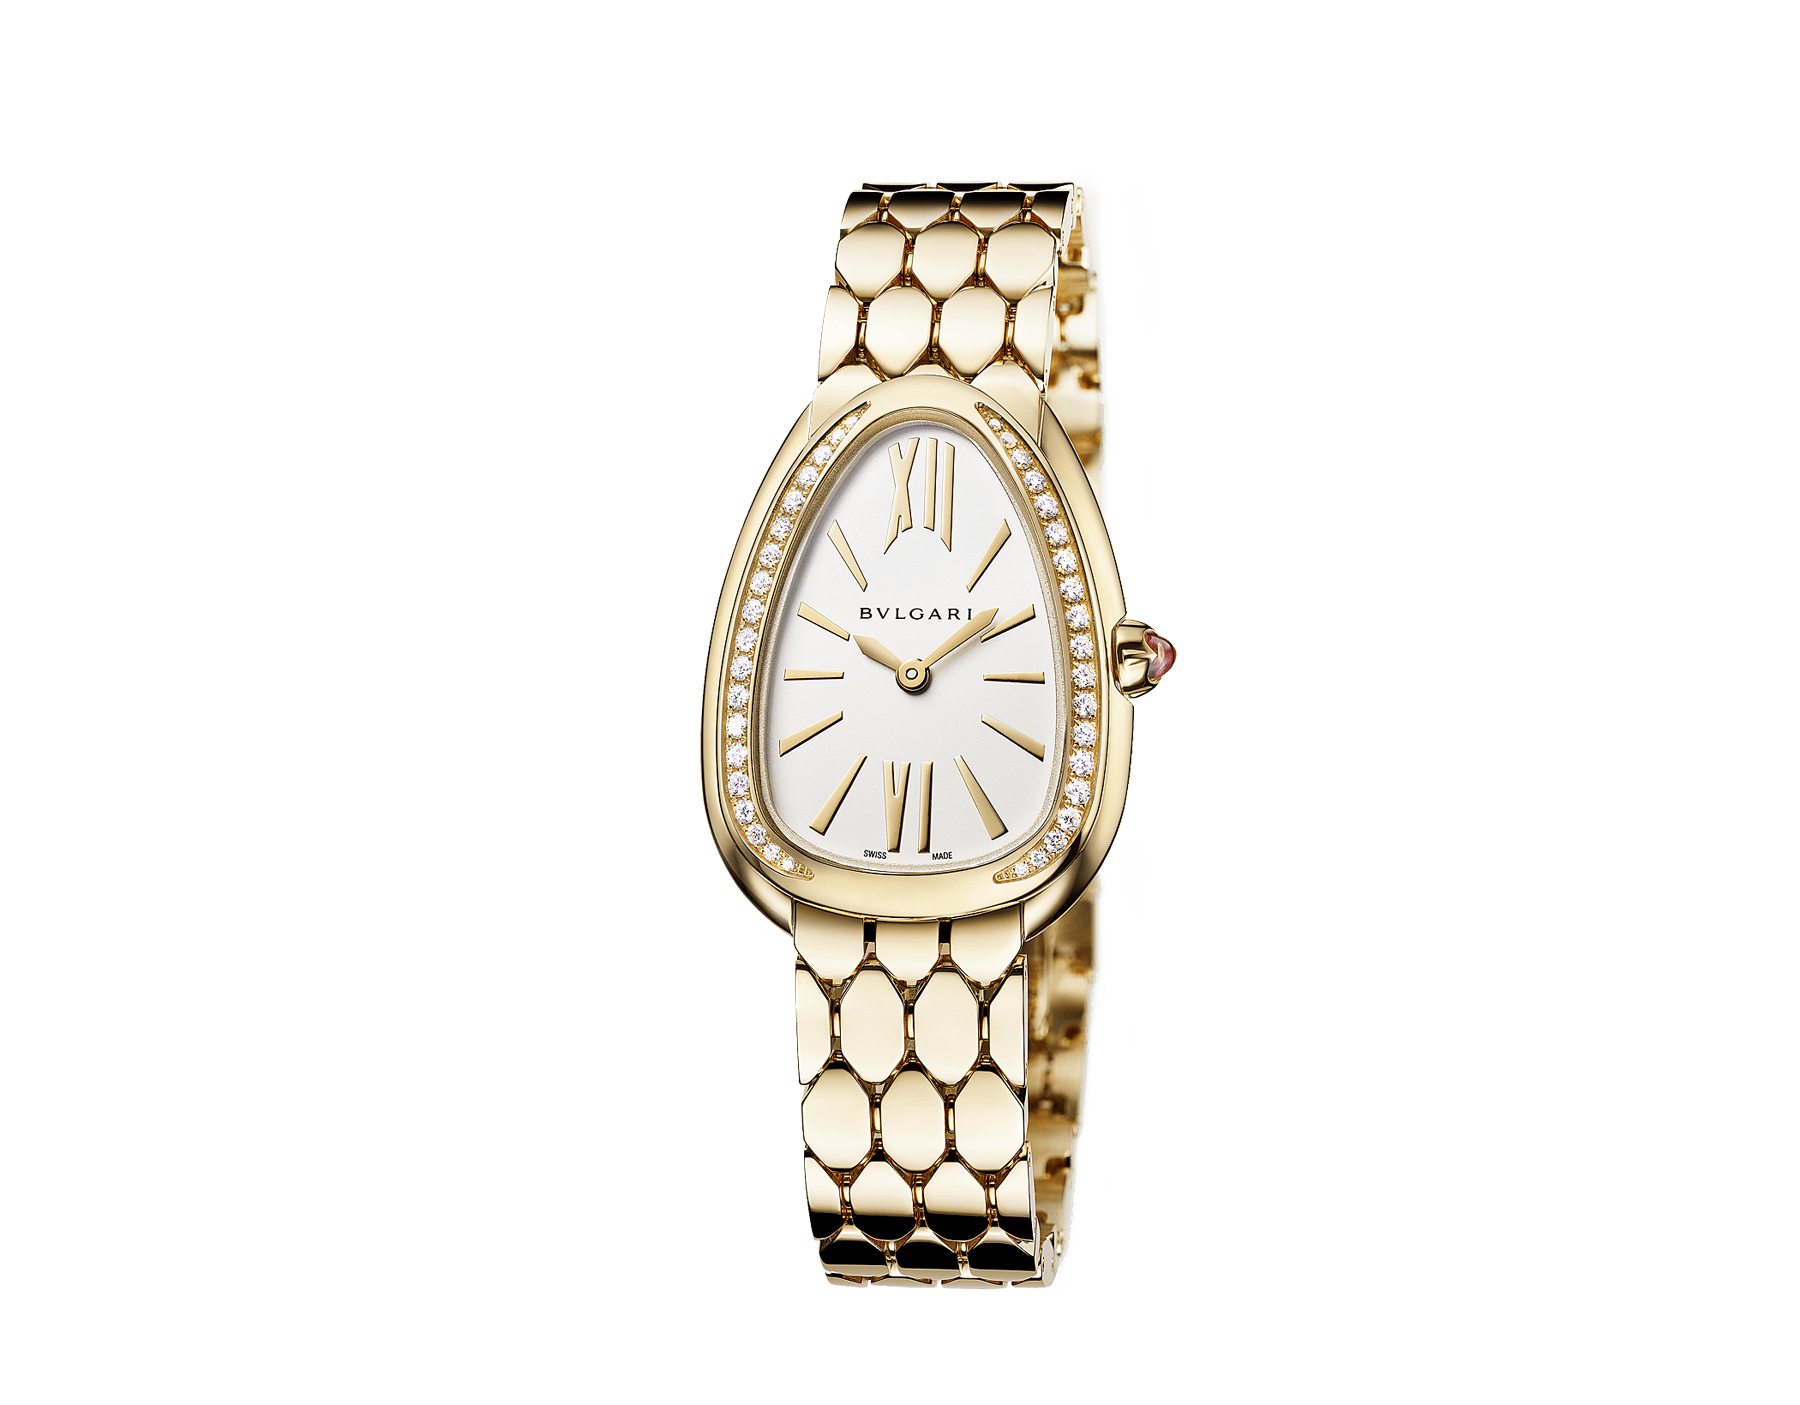 Serpenti Seduttori watch with 18 kt yellow gold case, 18 kt yellow gold bracelet, 18 kt yellow gold bezel set with diamonds and a white silver opaline dial. 103147 image 2